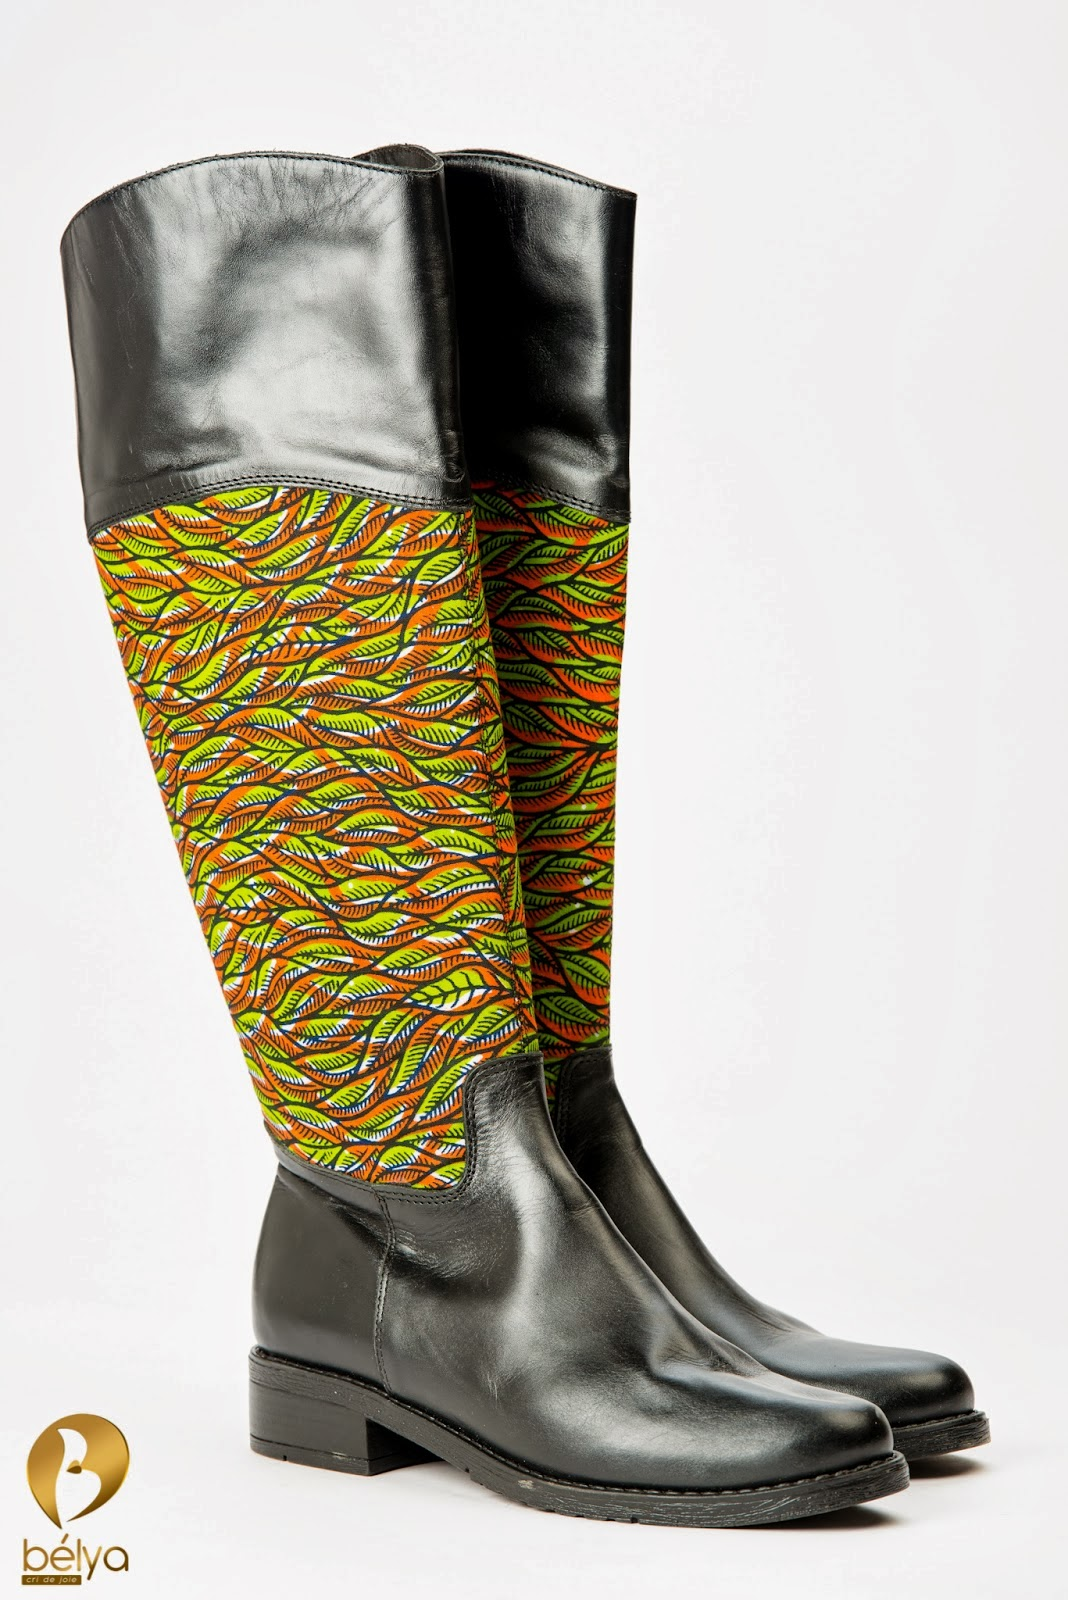 These Boots Were Made For Strutting: Mama Congo: Bélya And The Magic Of African Print